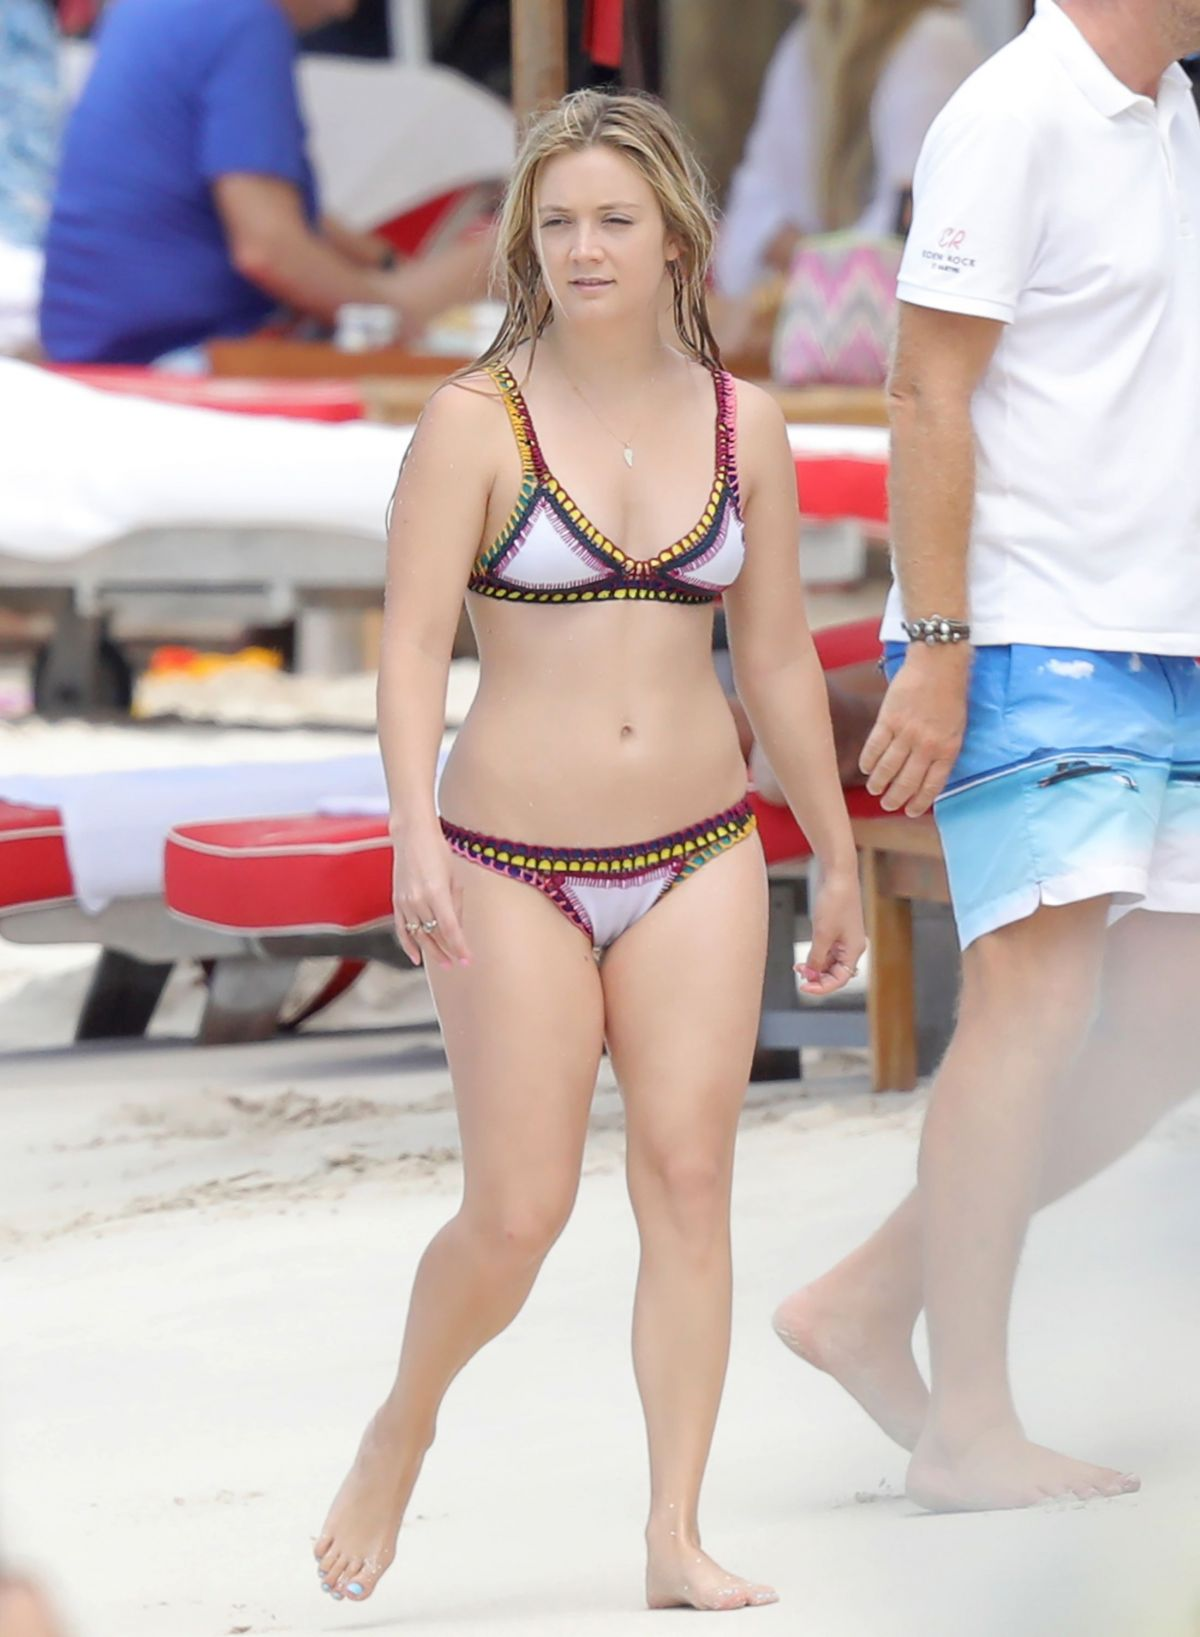 Bikini Billie Lourd nudes (97 photo), Paparazzi